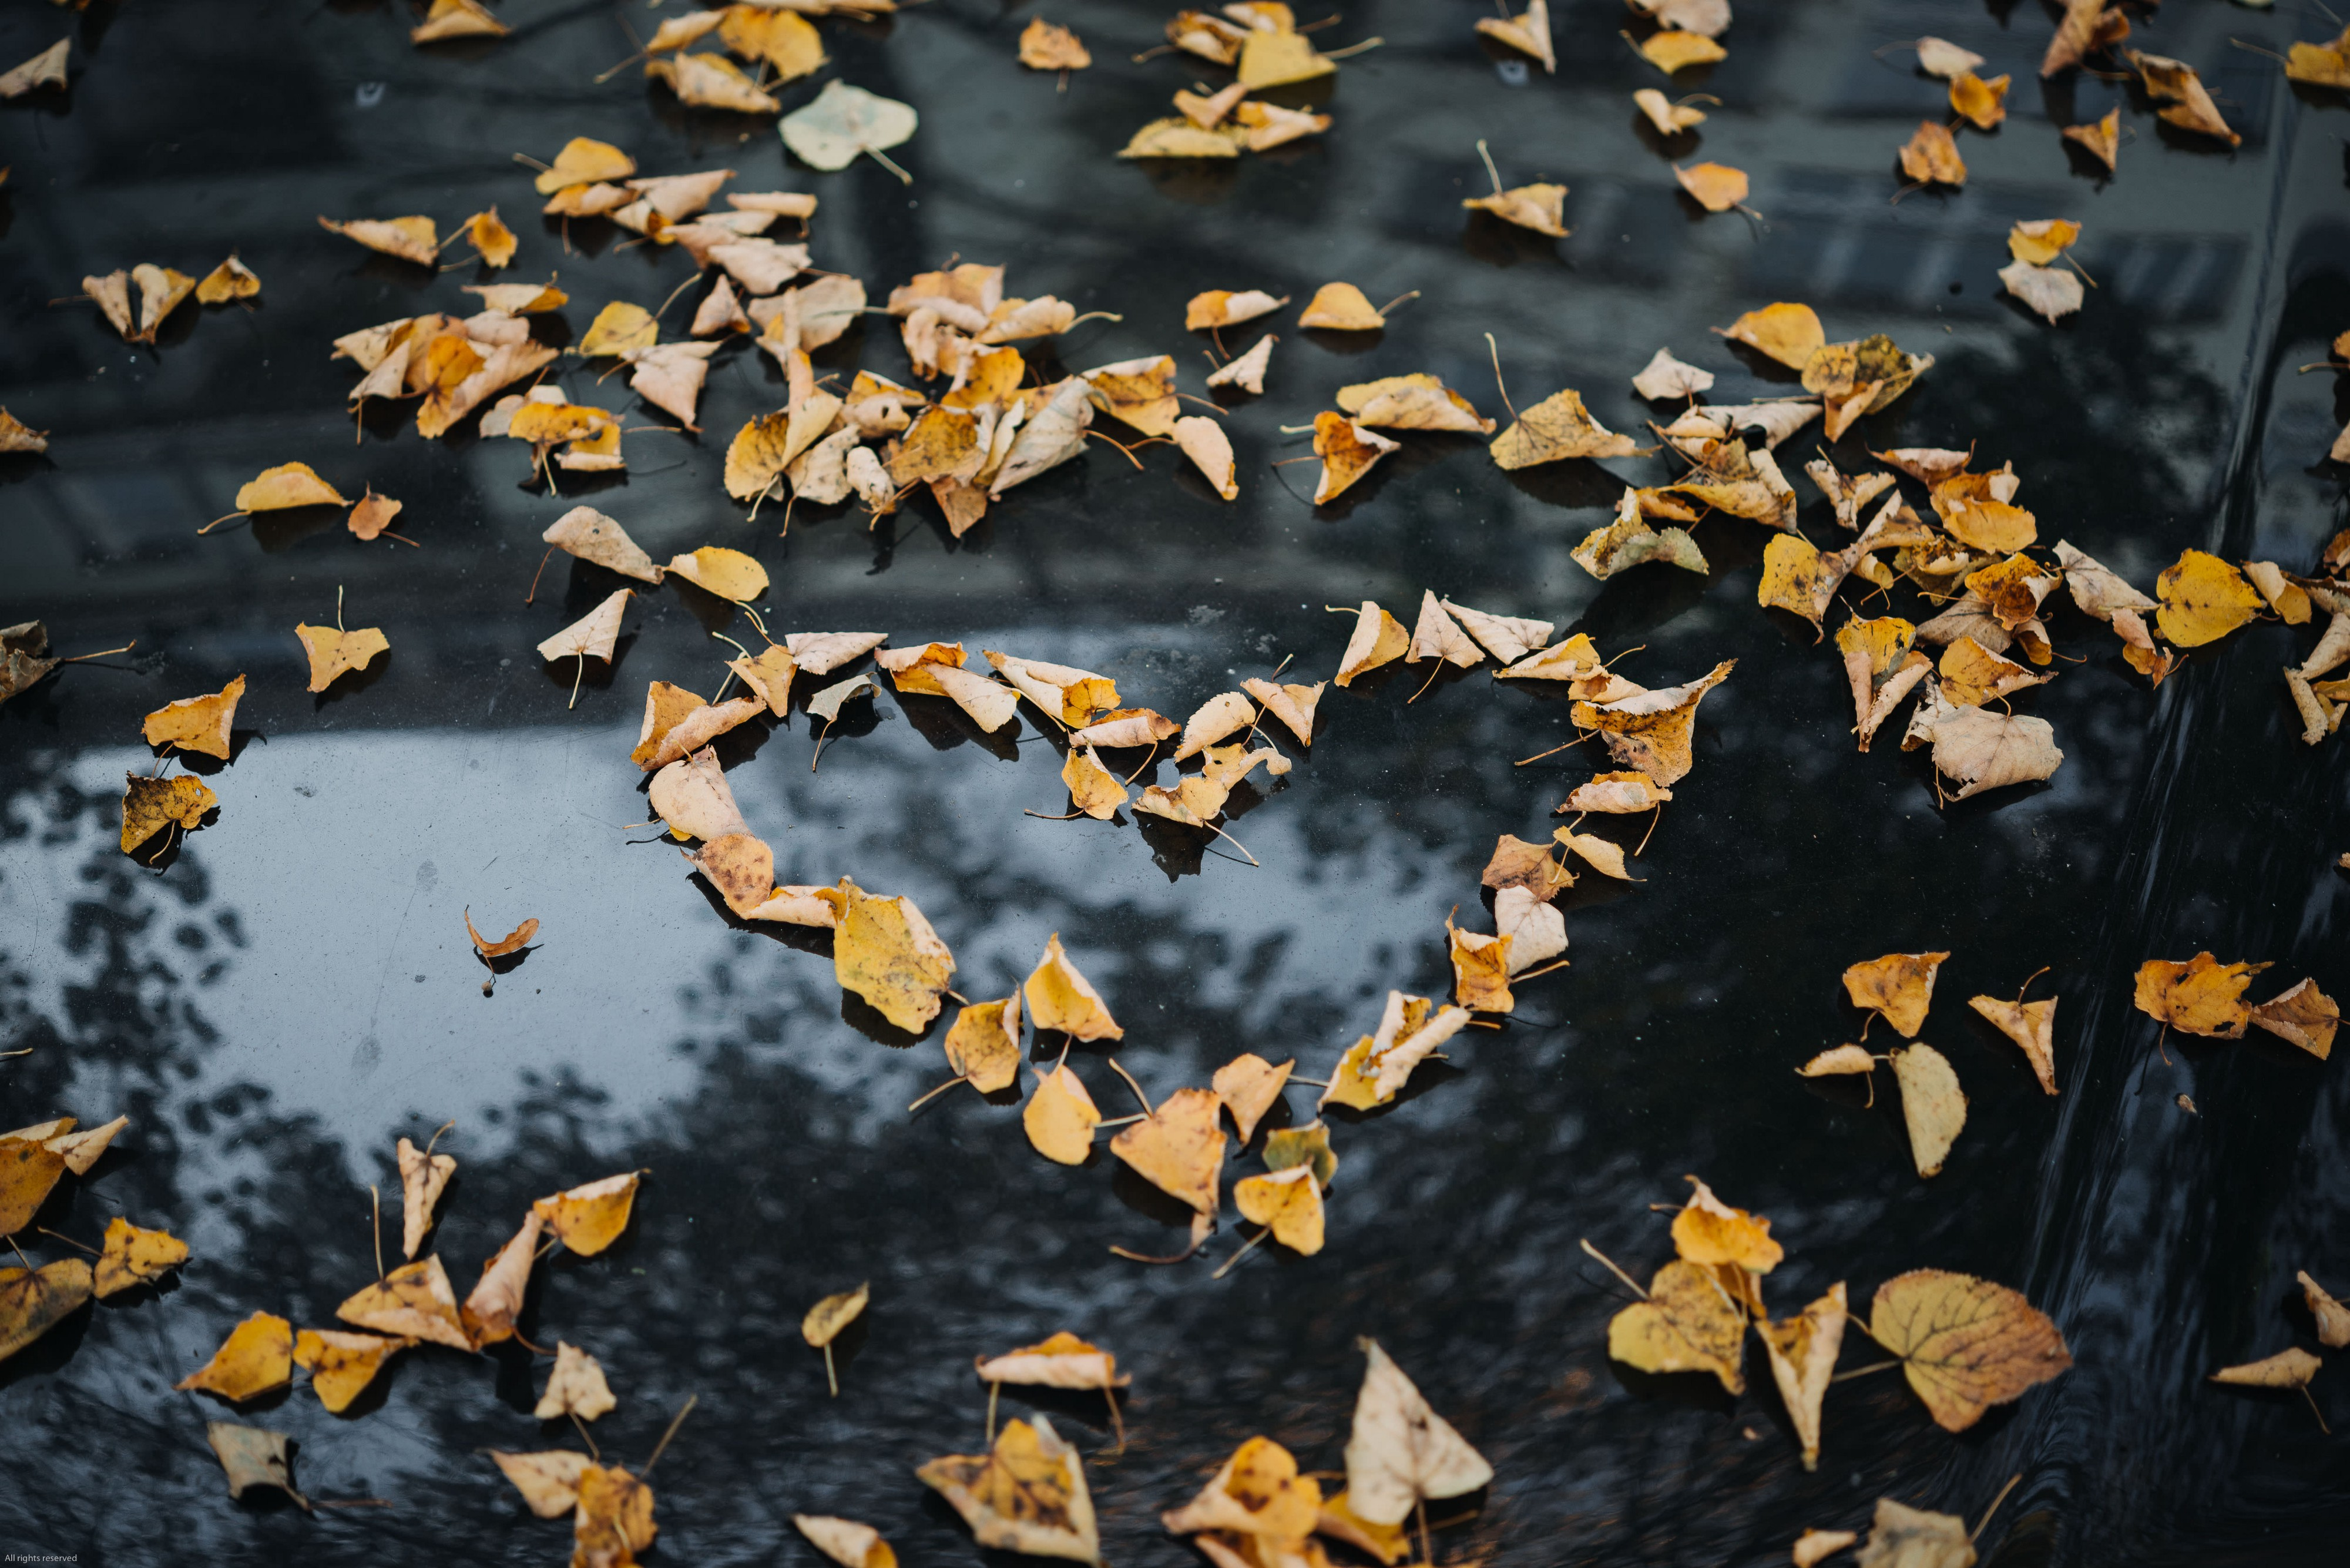 A love heart made from gold fallen autumn leaves in a puddle.